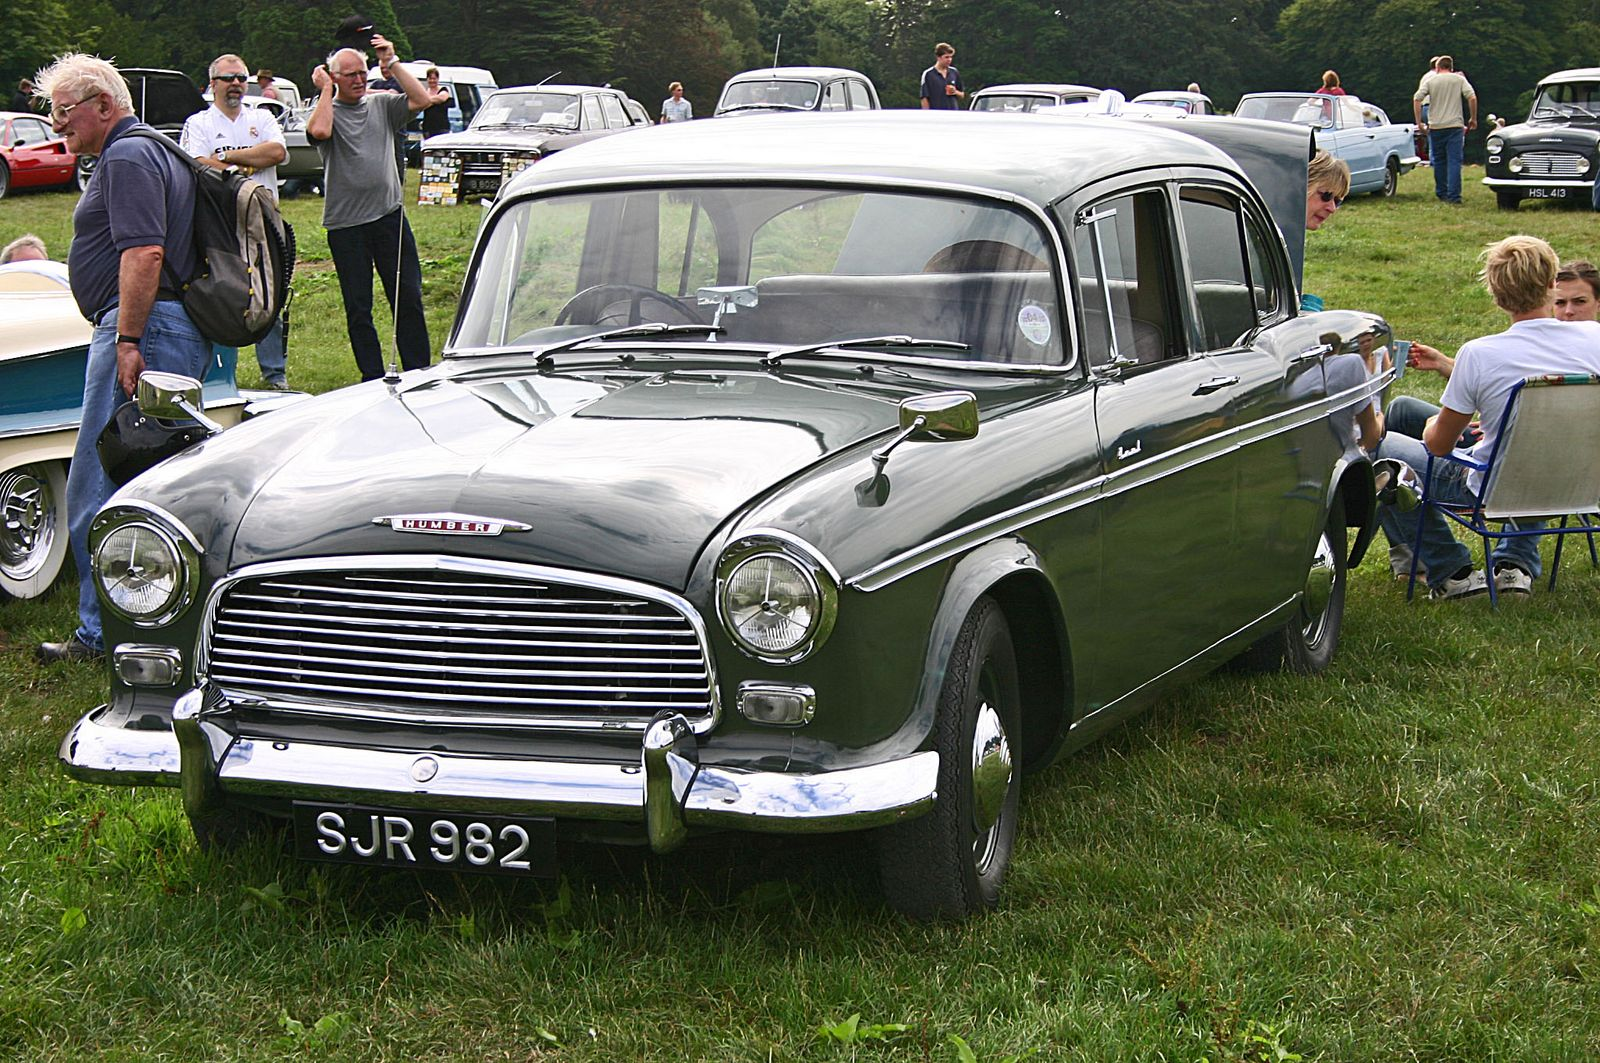 1963 Humber Hawk Series 3 Carsaddiction Com